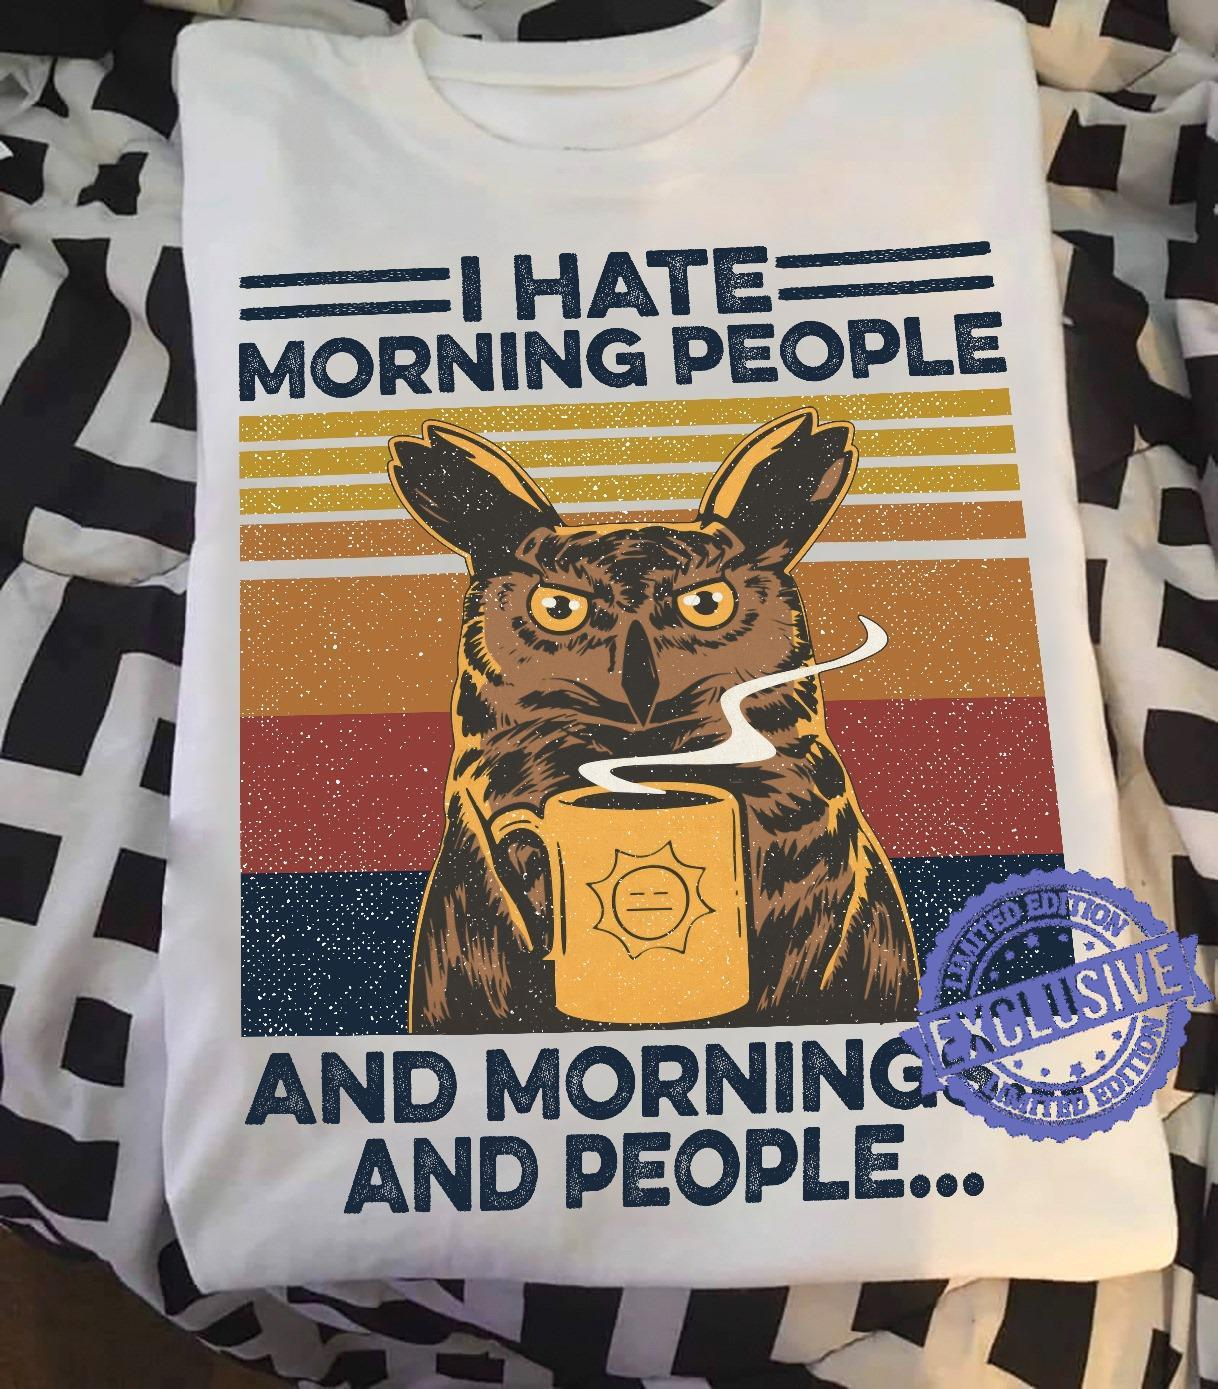 Vintage I hate morning people and mornings and people shirt